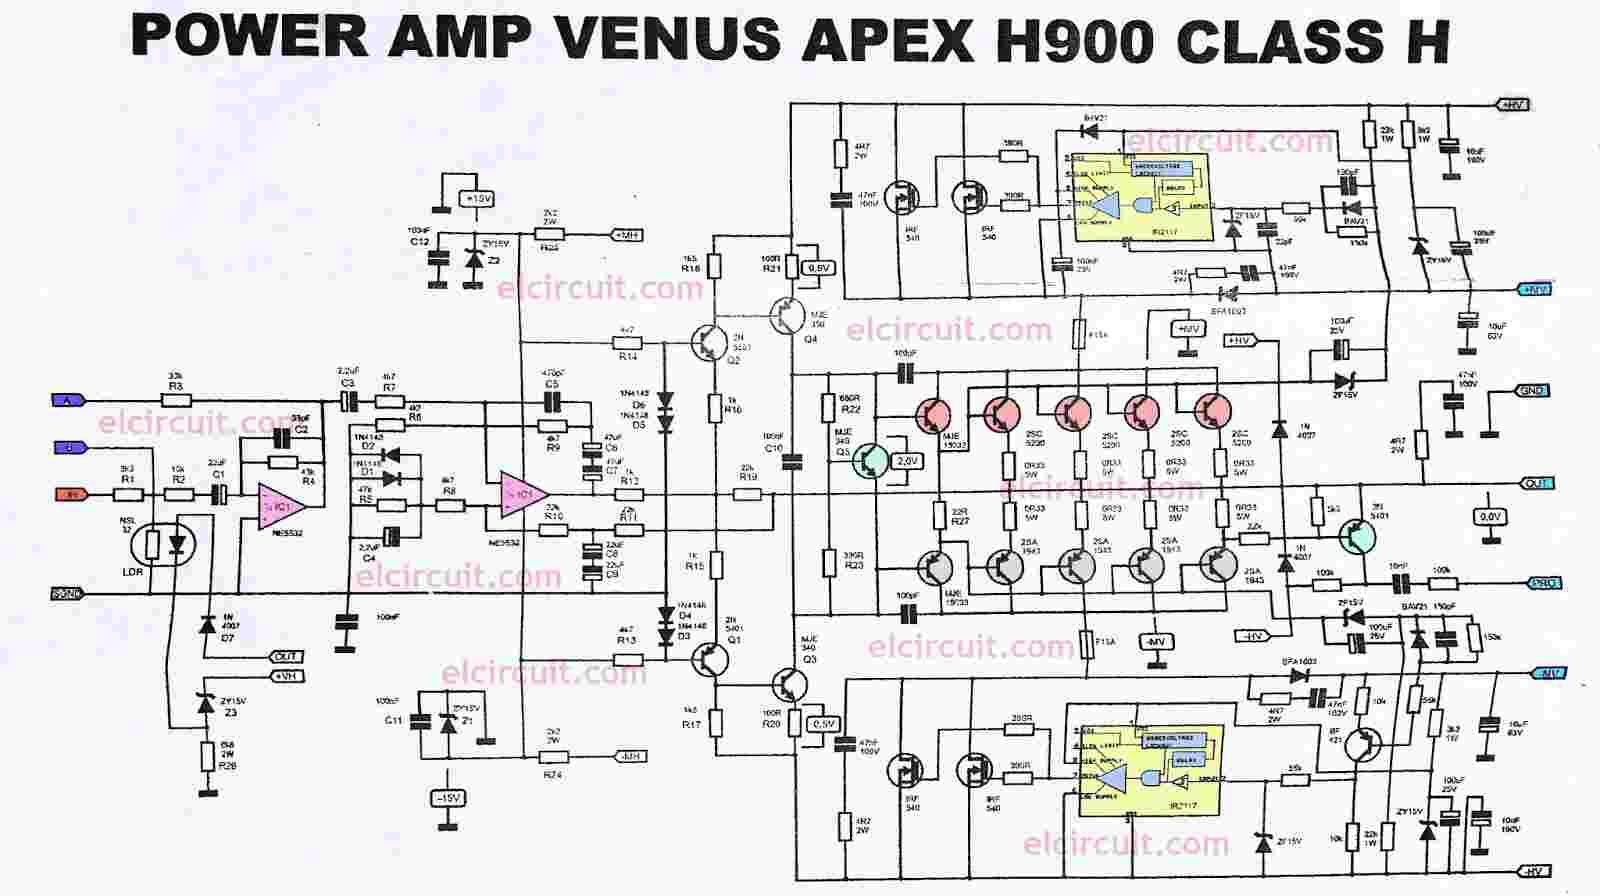 Power Amplifier Apex H900 Efficient Flat And Powerful Tda2004 Car Stereo Circuit Electronic Circuits Diagram